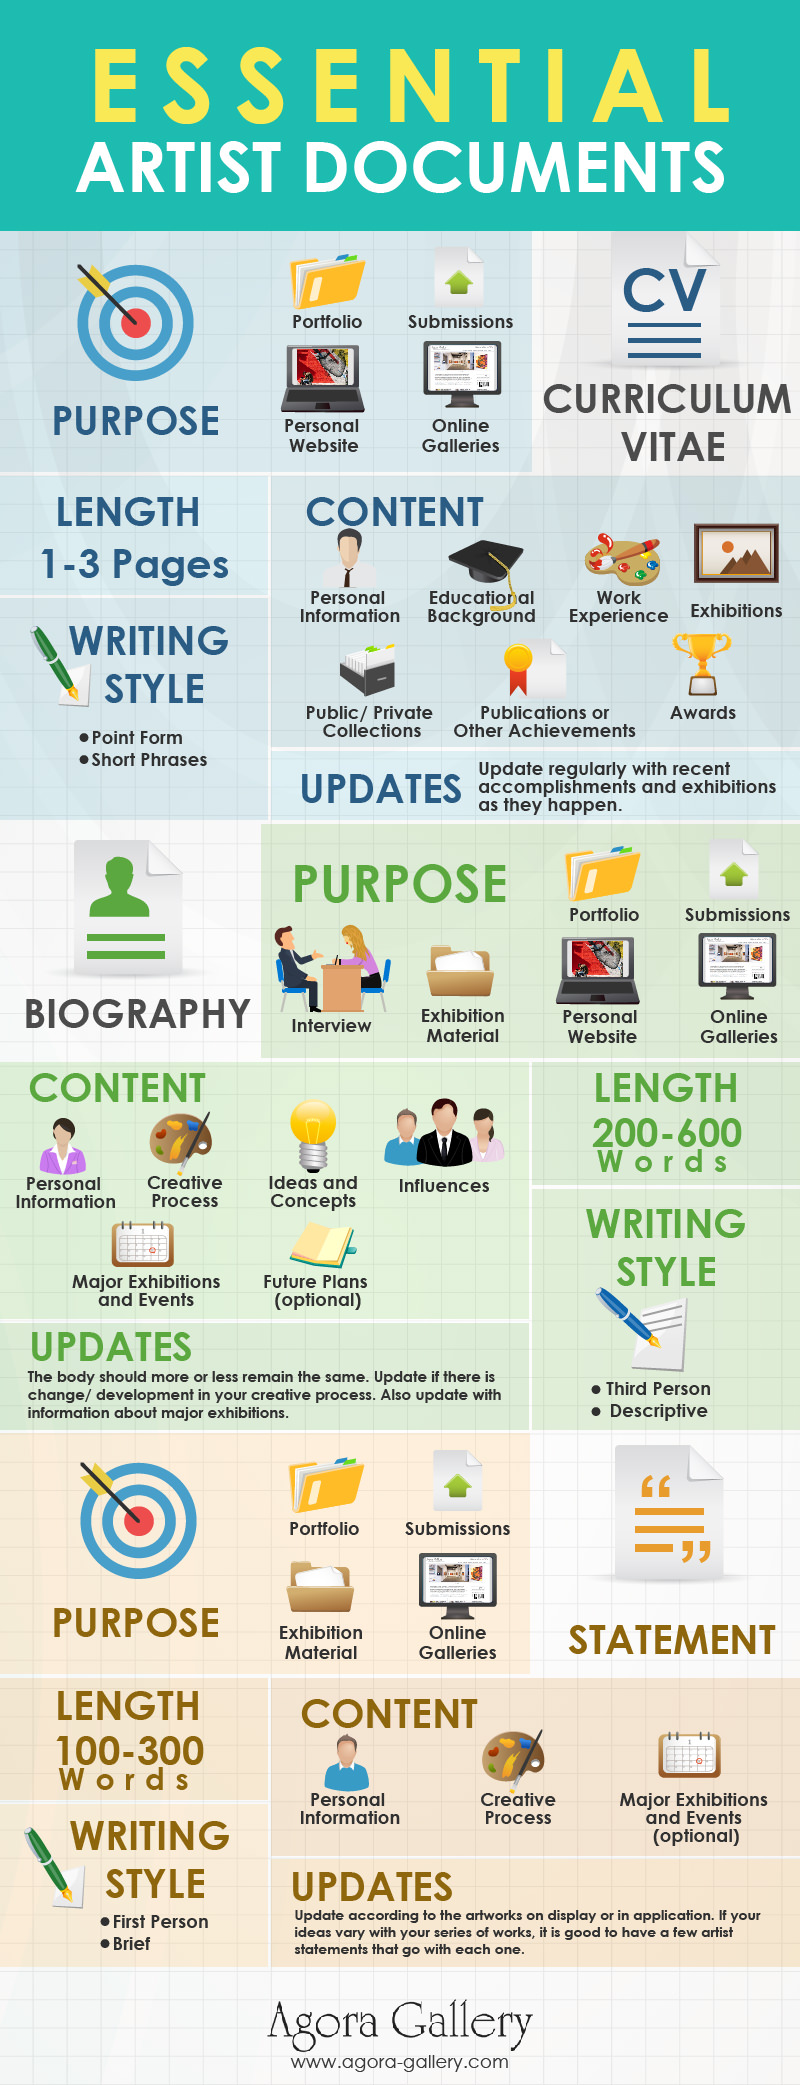 Poverty Essay Thesis  Should Condoms Be Available In High School Essay also Sample Synthesis Essays Writing An Artist Biography  Agora Gallery  Advice Blog Synthesis Essay Ideas